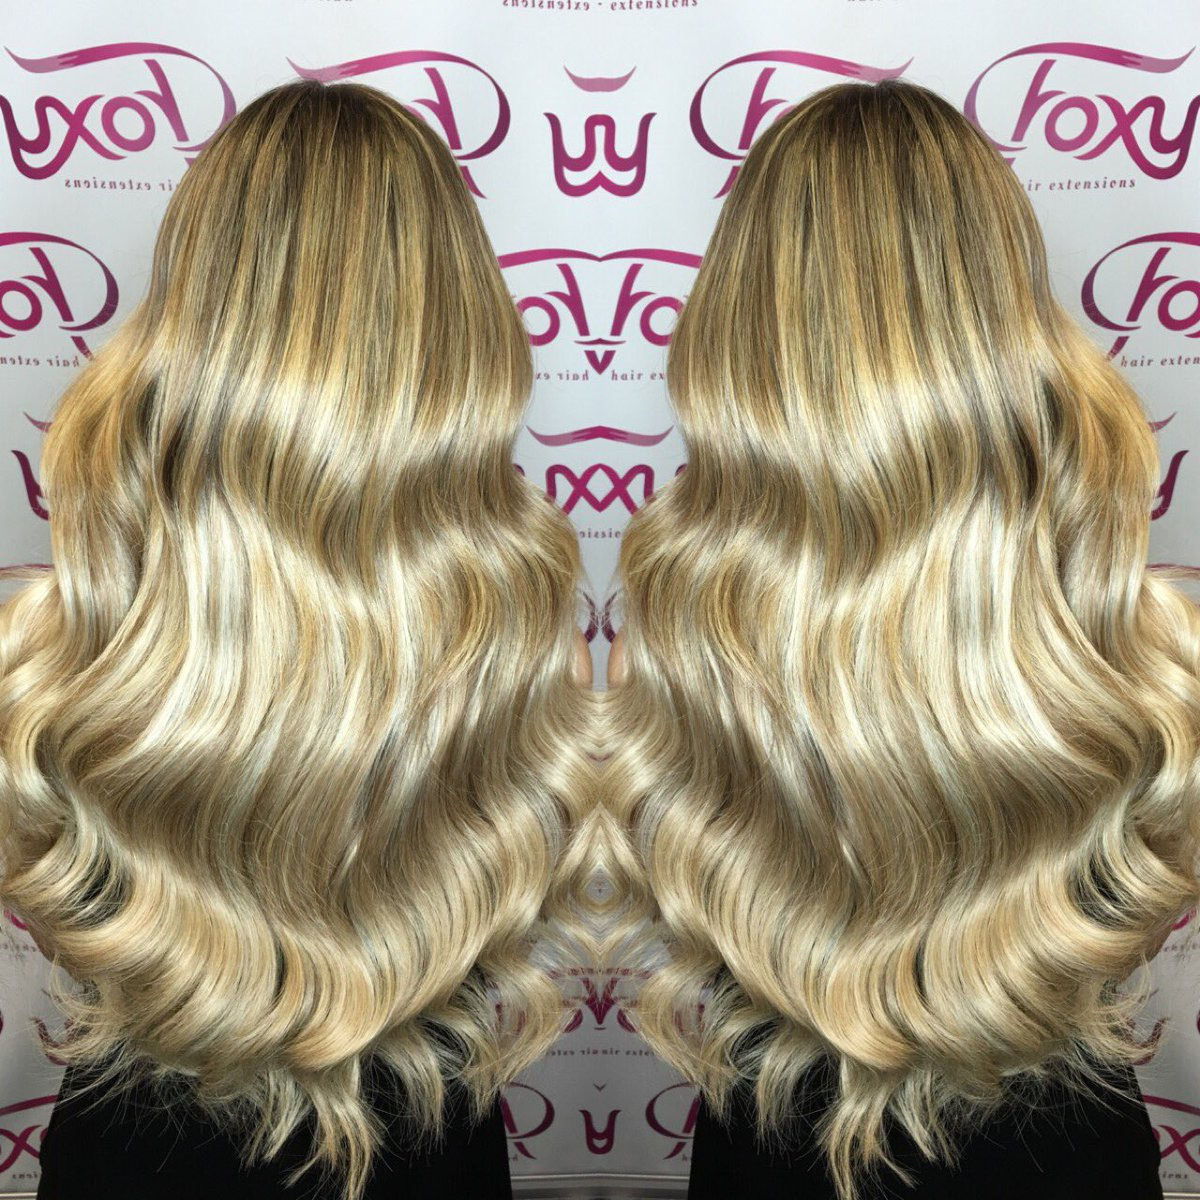 Foxy Hair Extensions On Twitter 200 Grams Of 16 Inch Foxy Pre